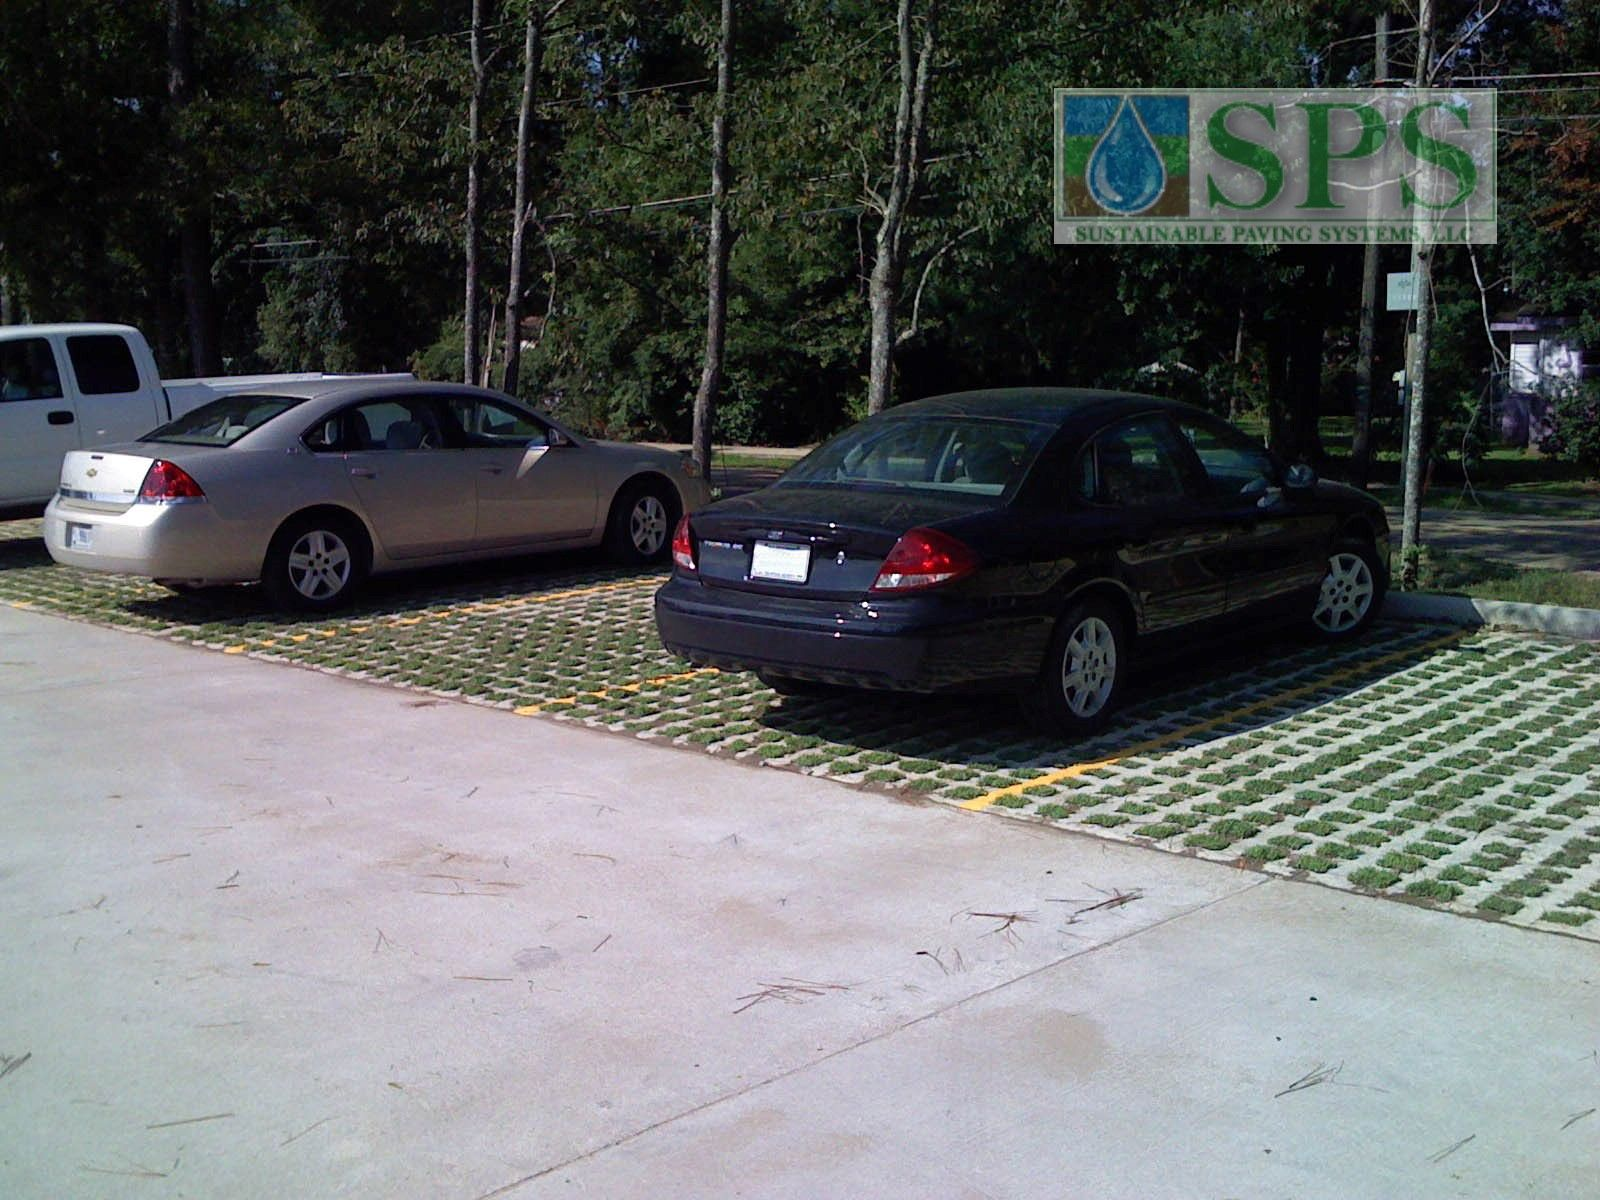 Grasscrete was installed here using molded pulp formers that provide sustainability with their 100% recycled content and ability to degrade over time into the sub-soils.